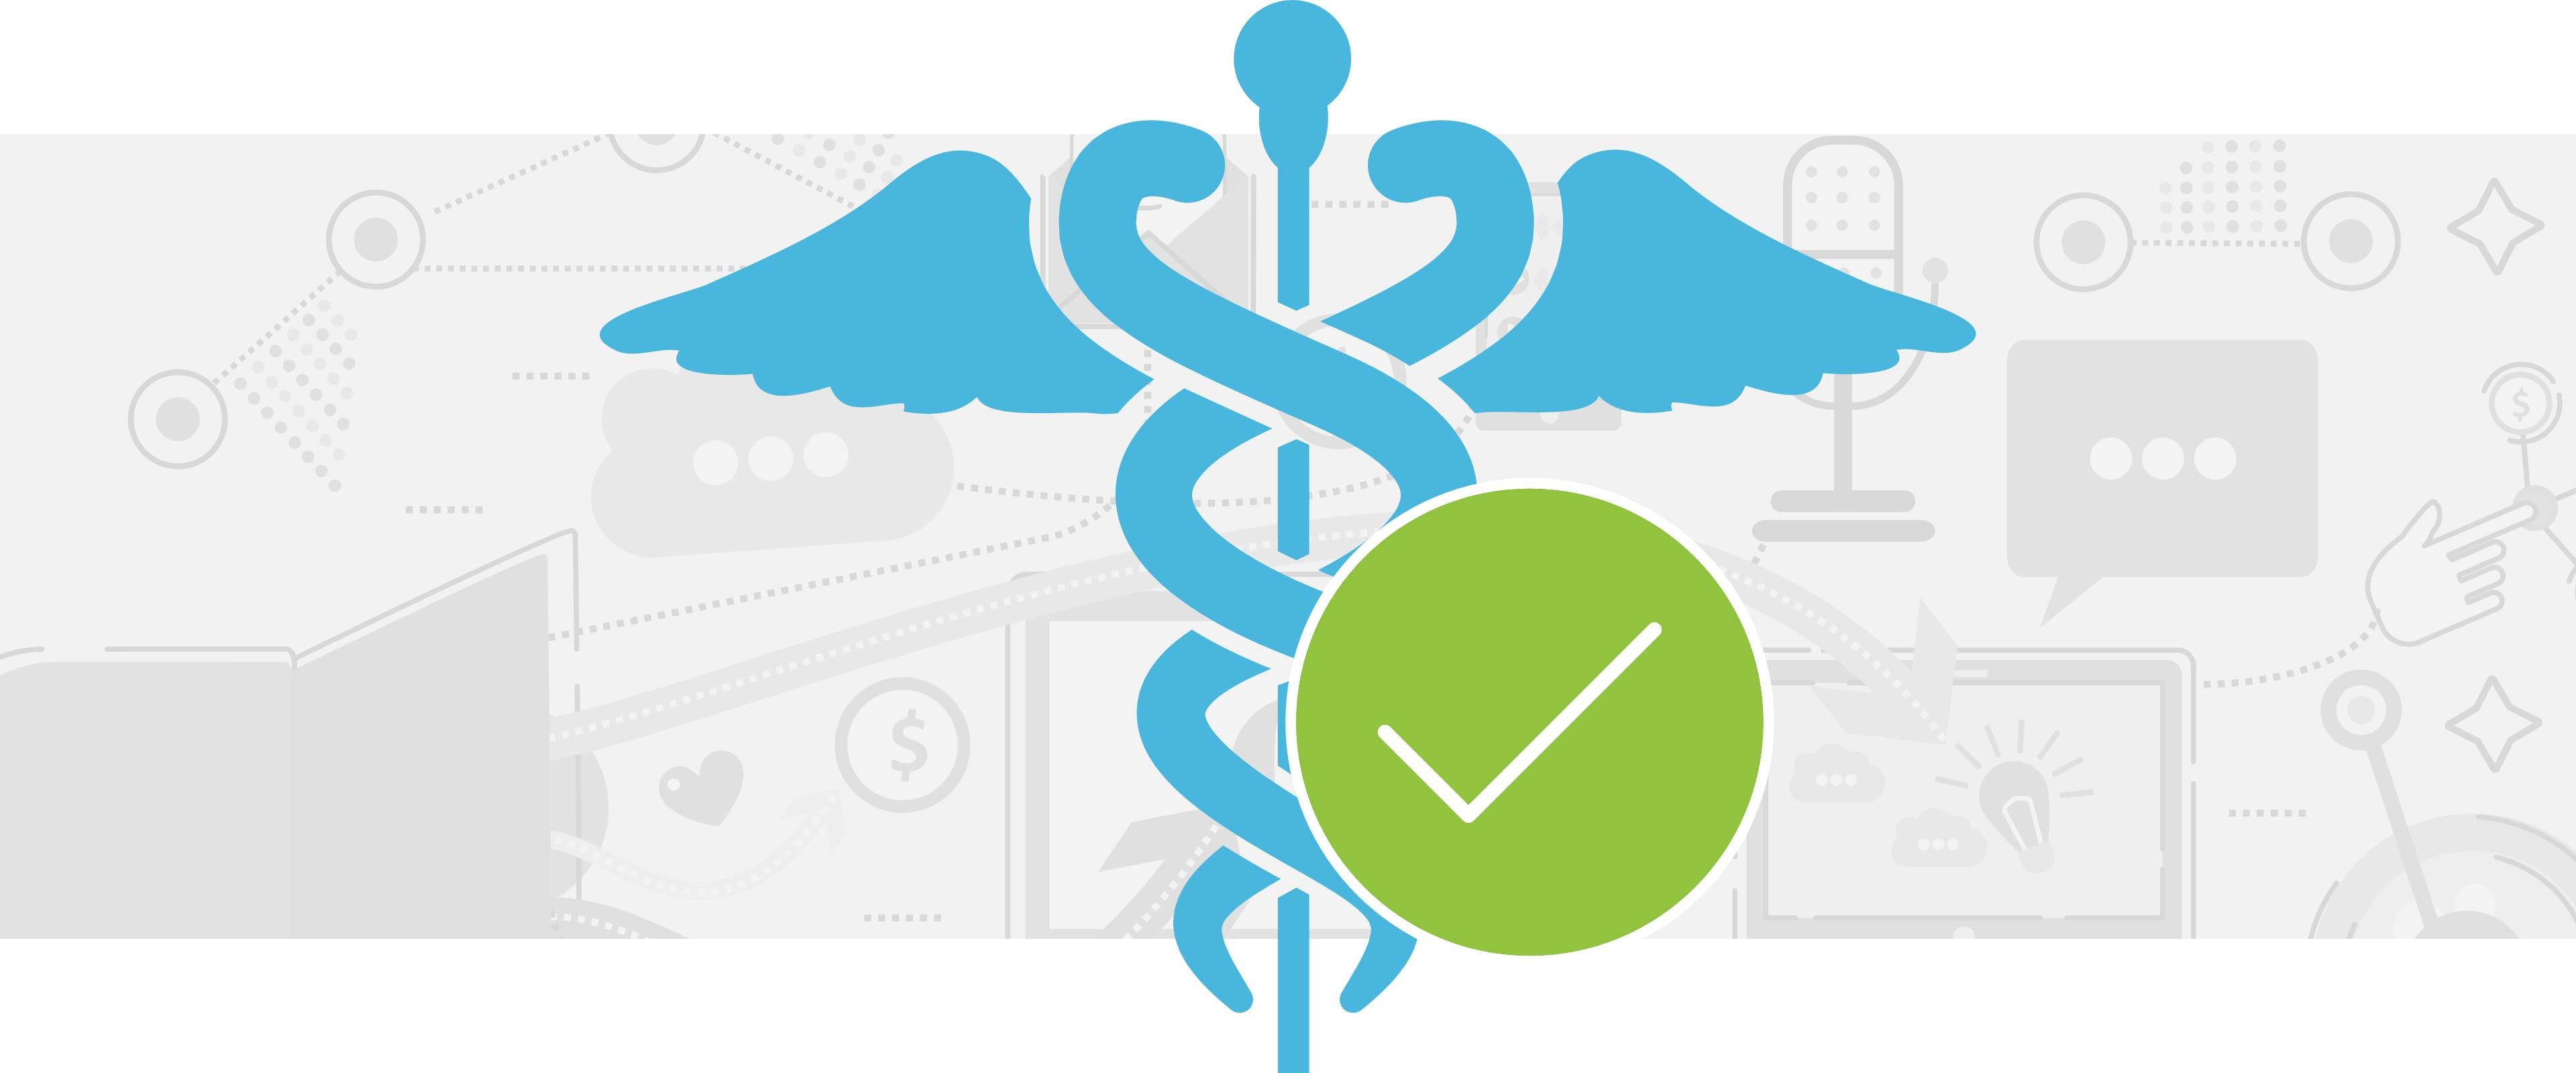 Blue HIPPA compliance icon with a green check mark beside it